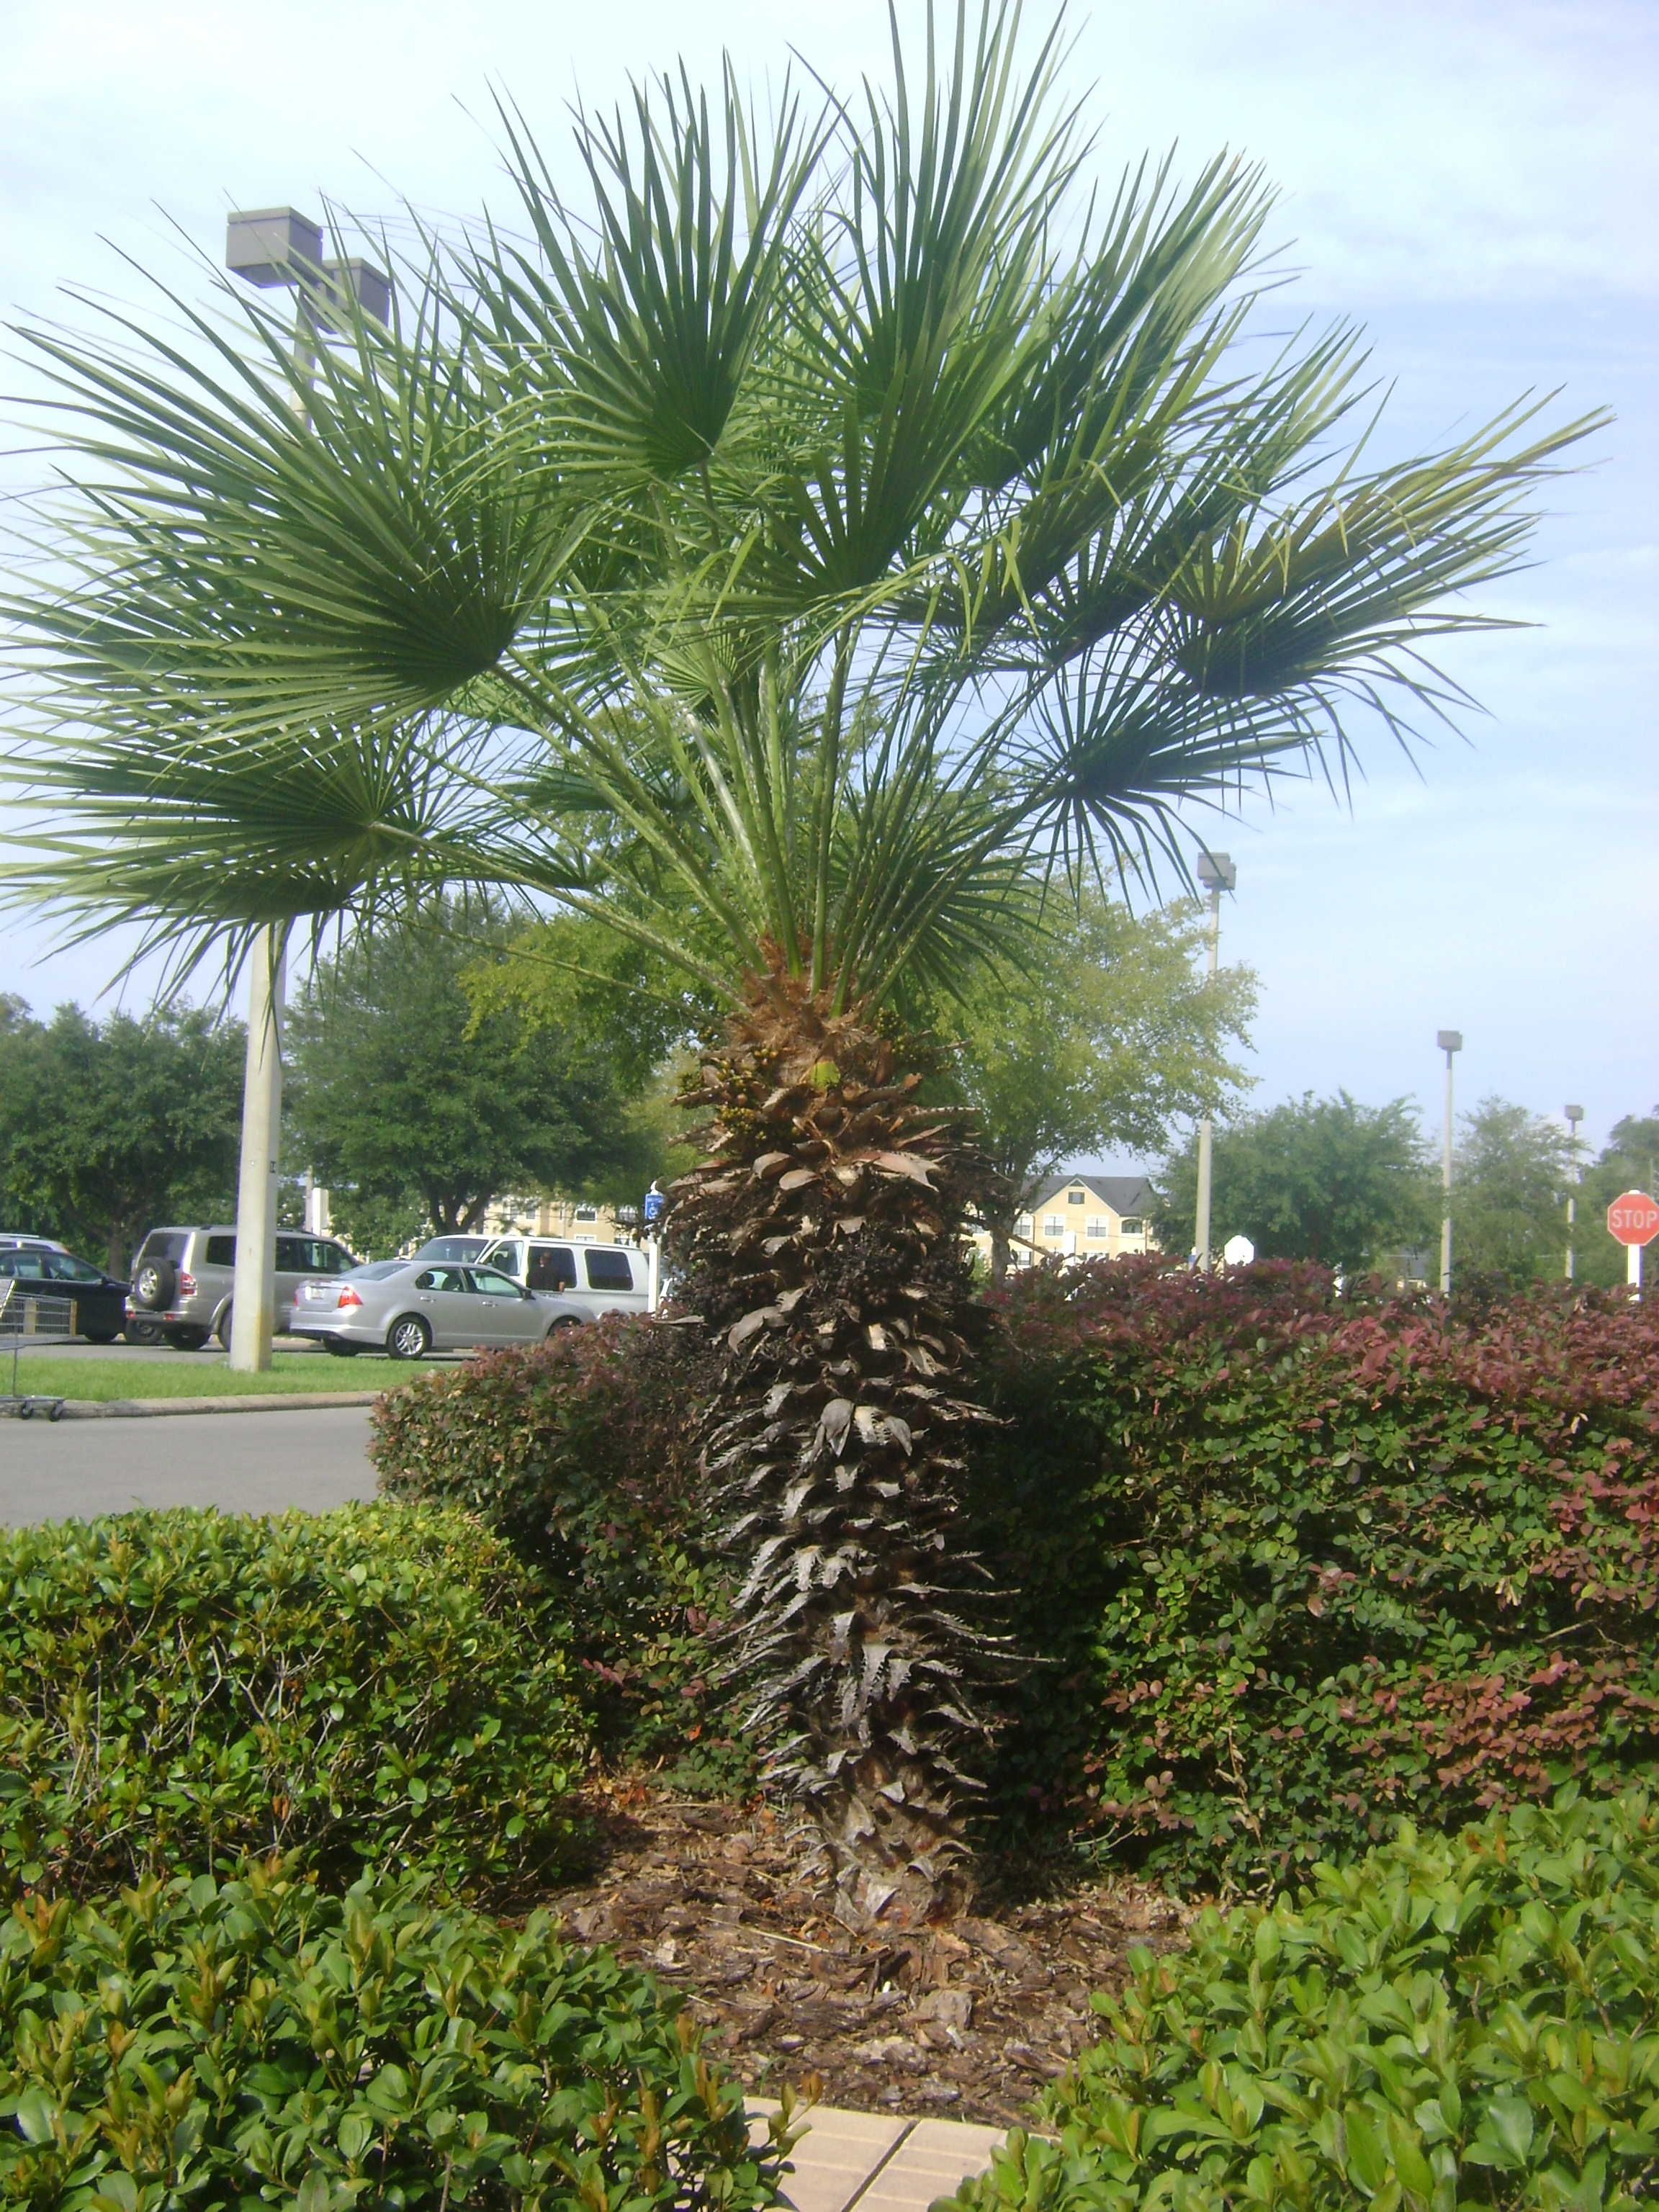 Garden Centre: Buy European Fan Palm Trees, For Sale In Orlando, Kissimmee